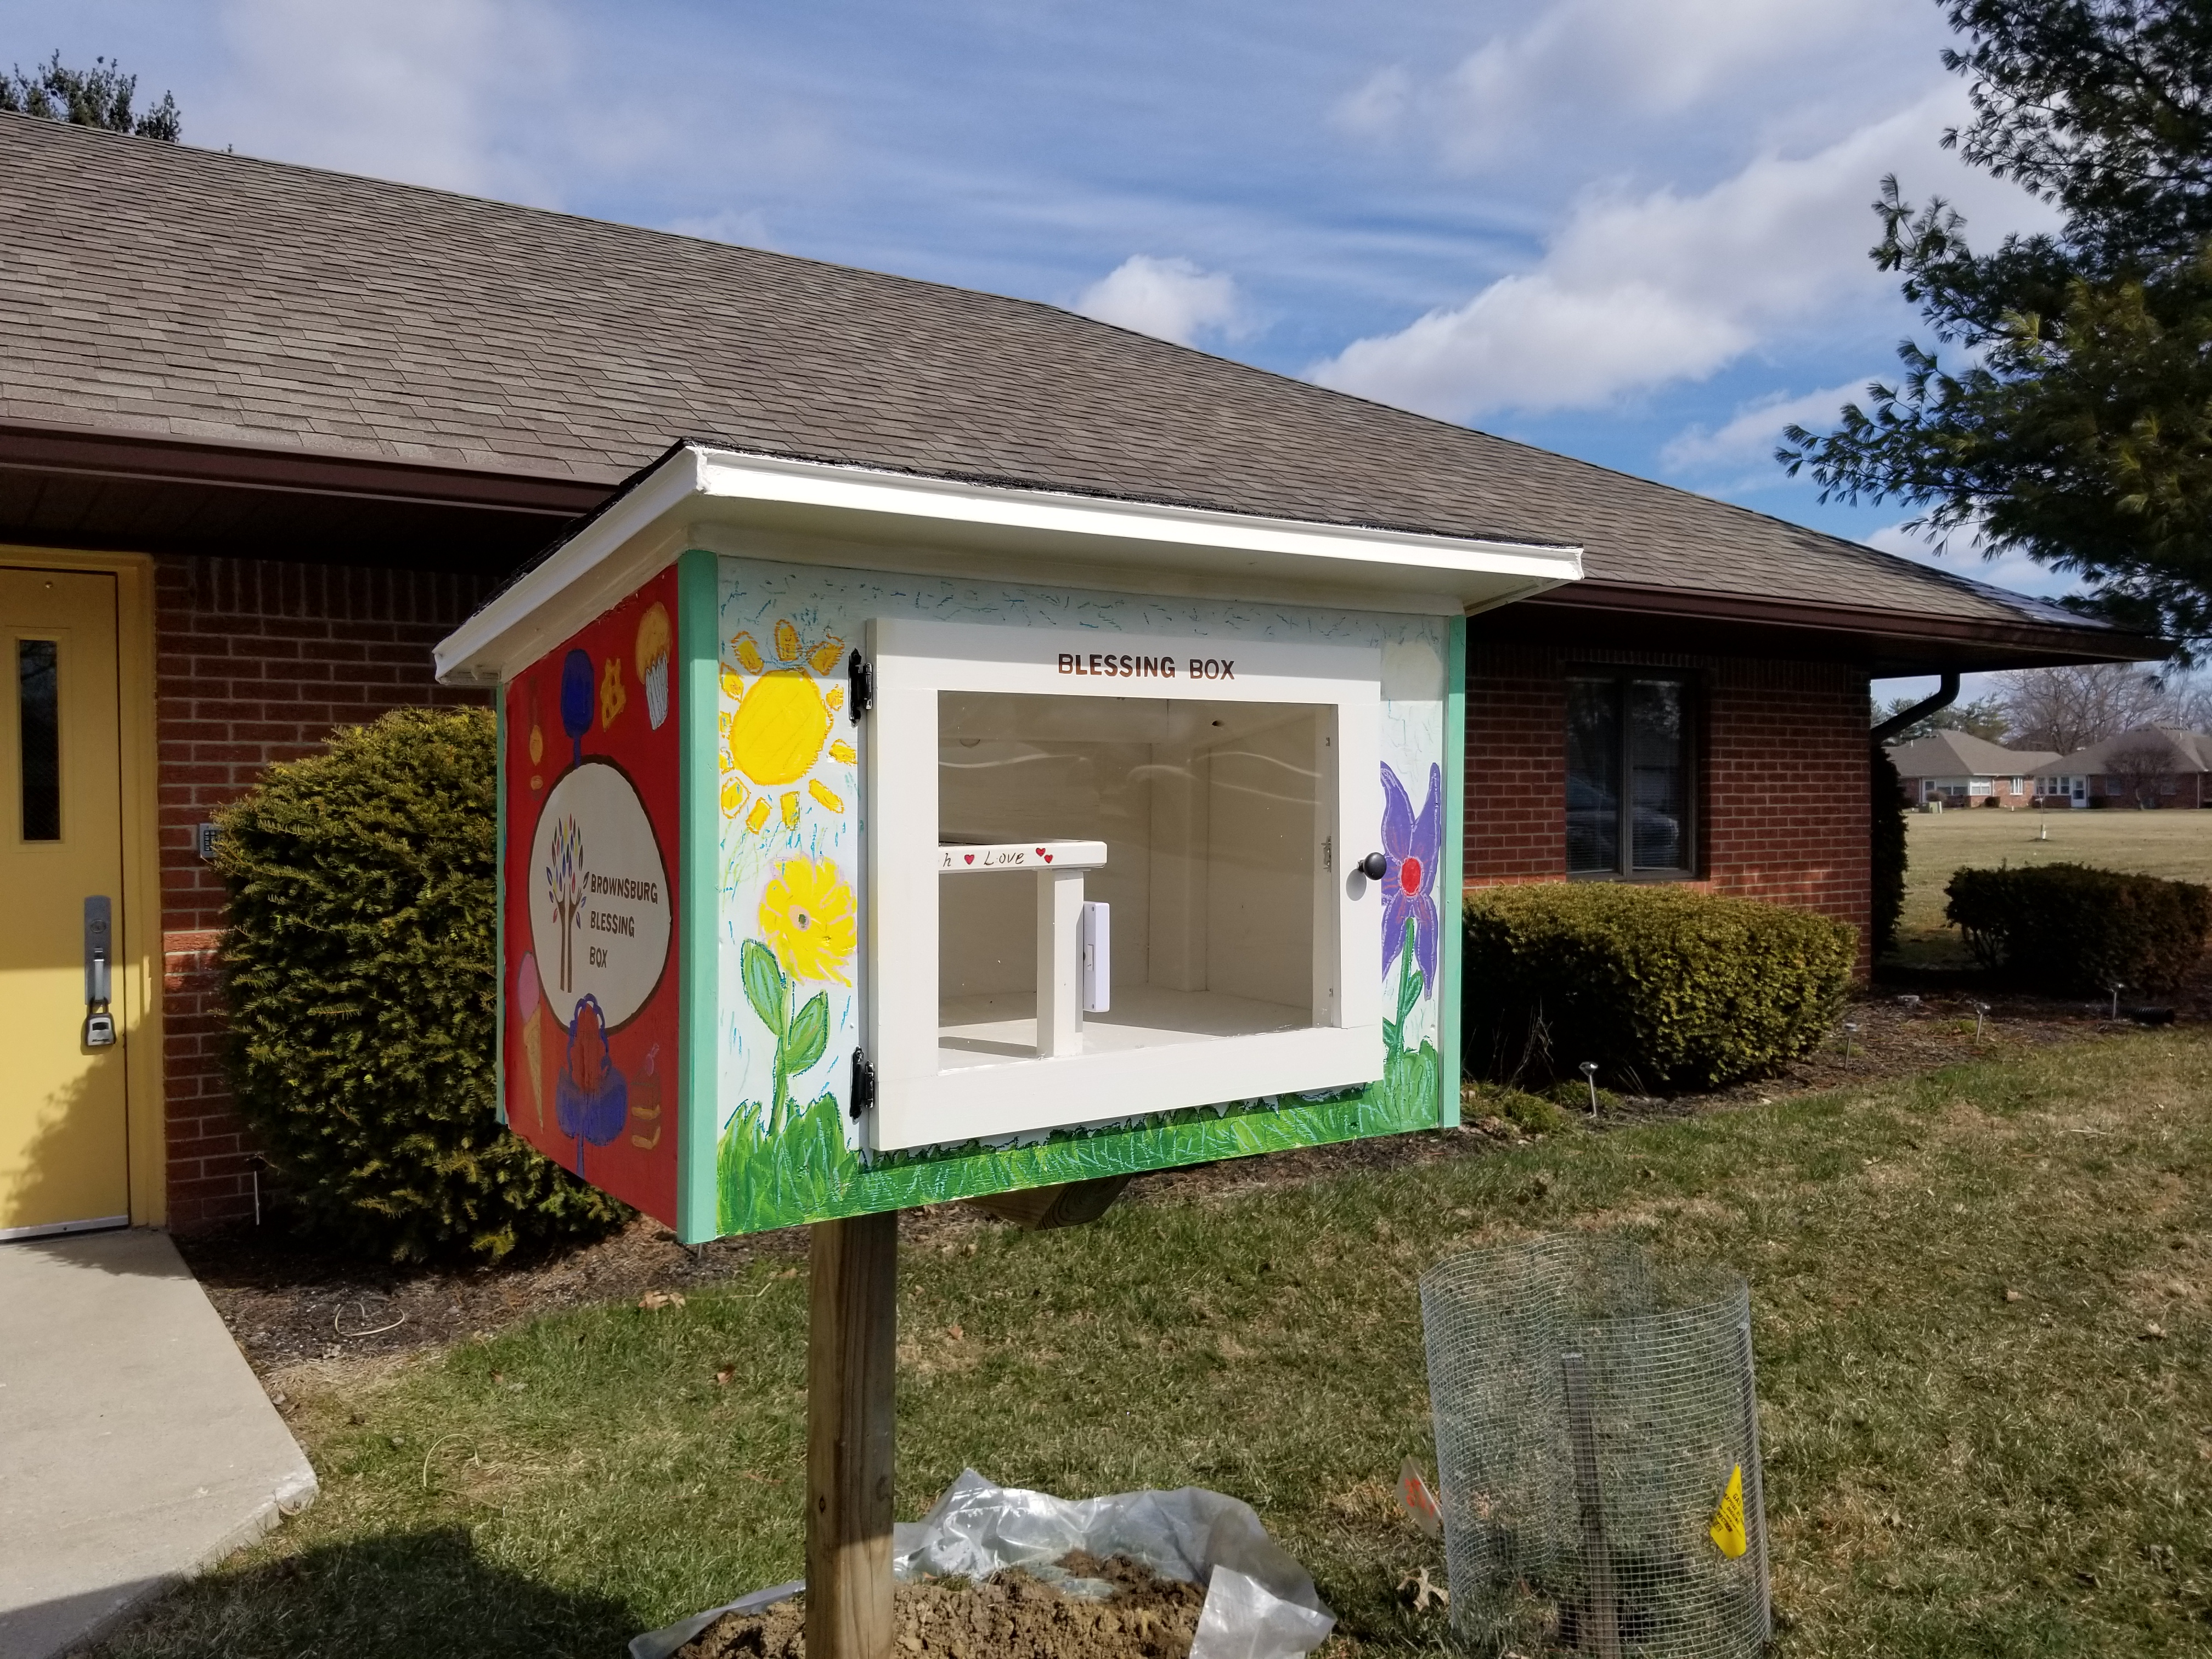 Brownsburg Blessing Box At Meaningful Day Services Photo 1